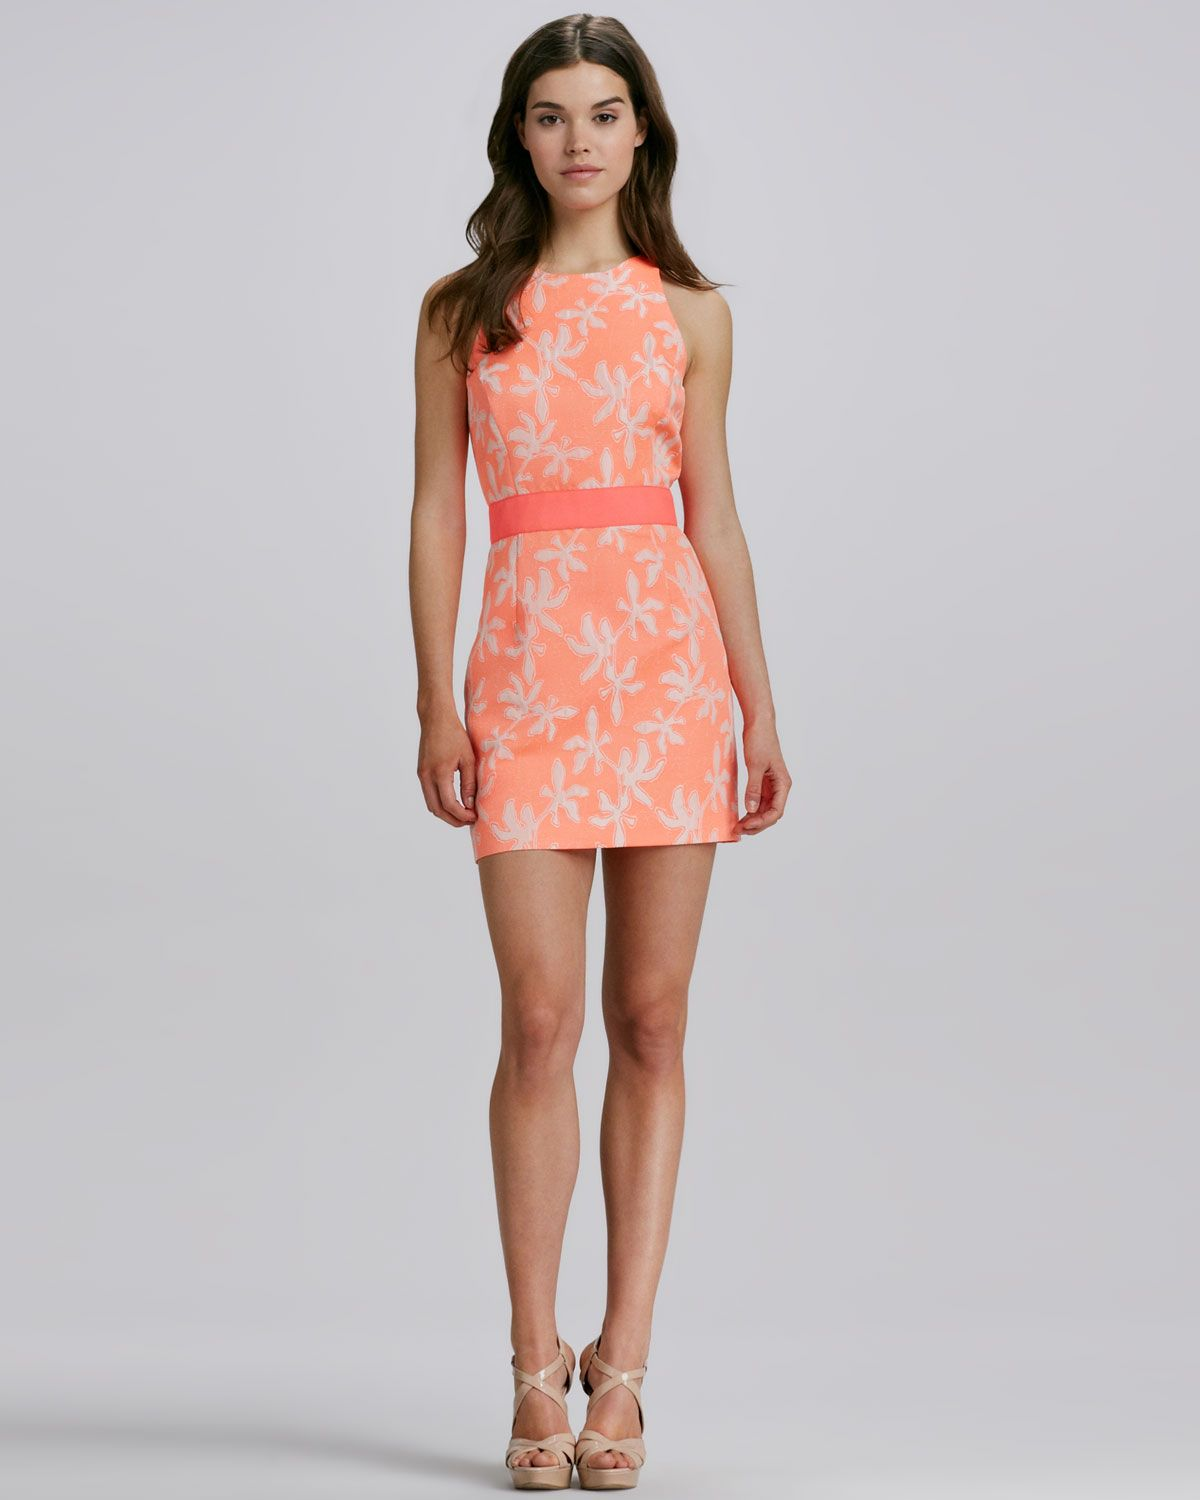 Milly sonya twotone short jacquard dress neiman marcus clothes